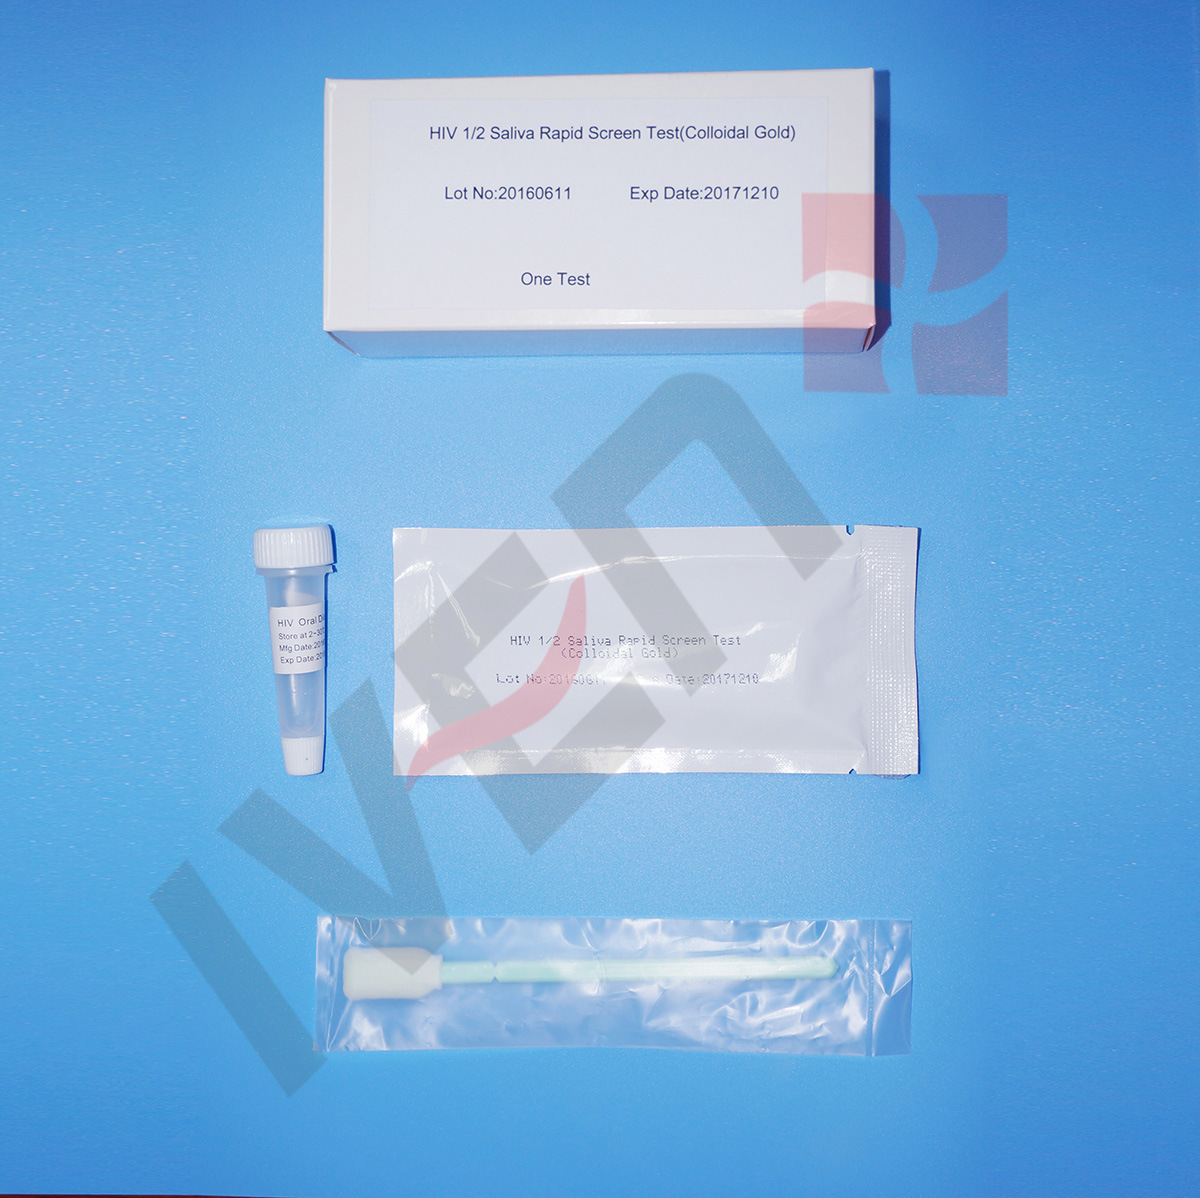 HIV 1/2 Saliva Rapid Test Kit